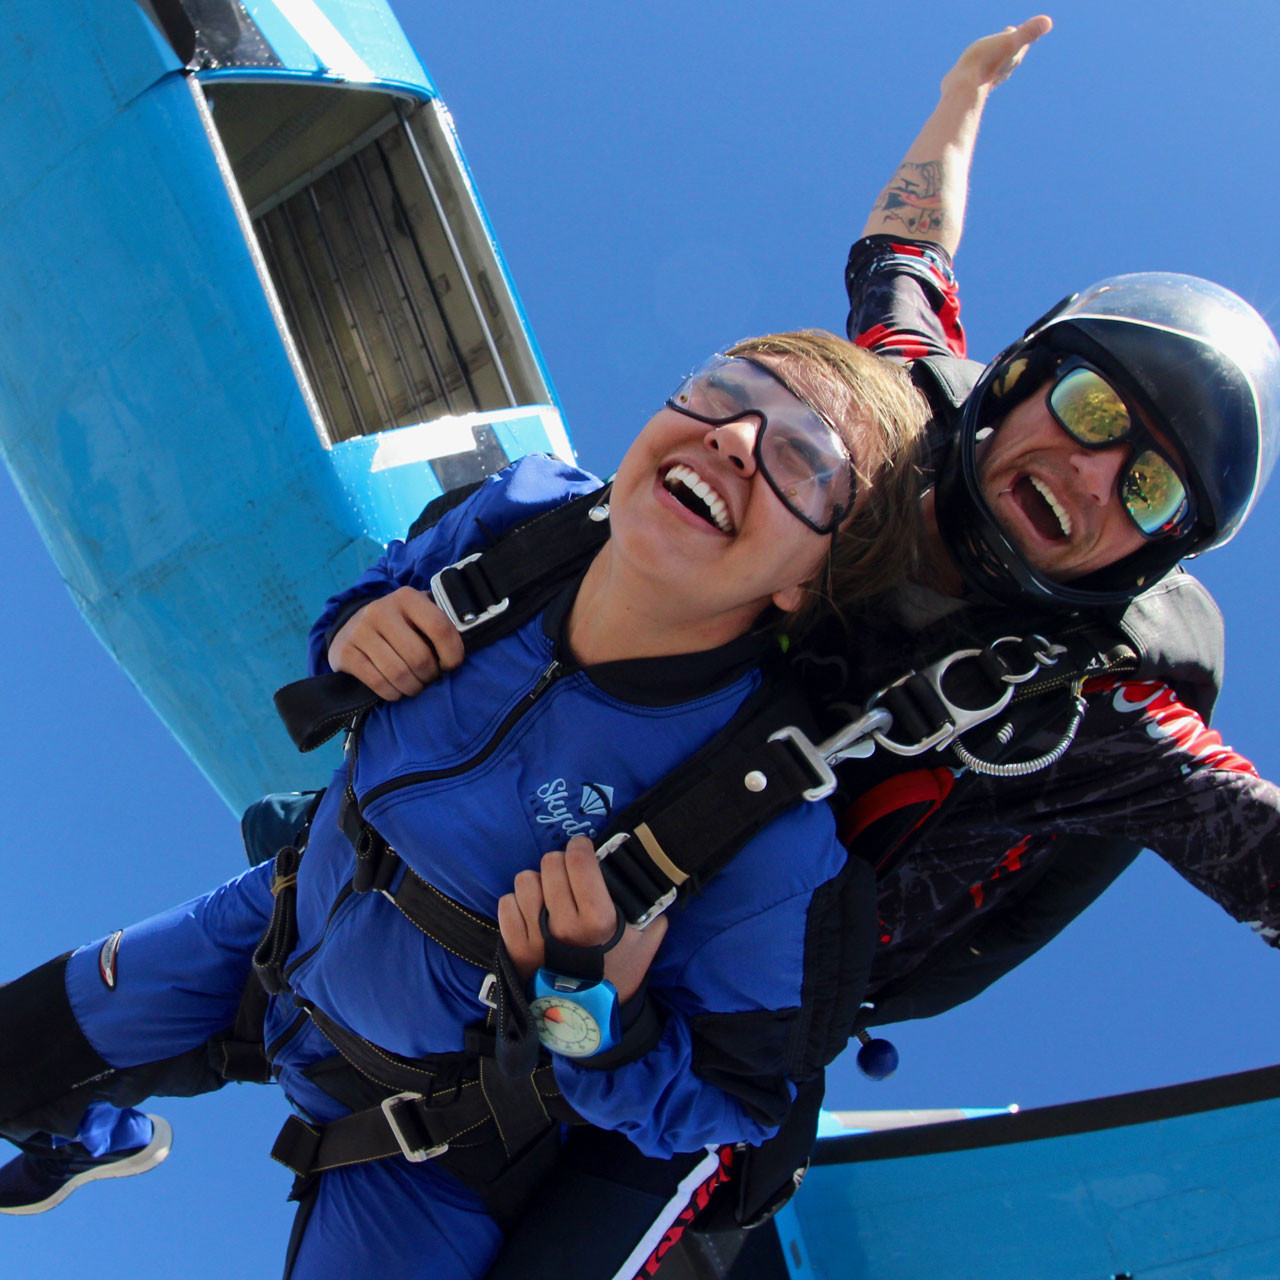 Female tandem skydiver taking the leap from the Skydive California air craft.